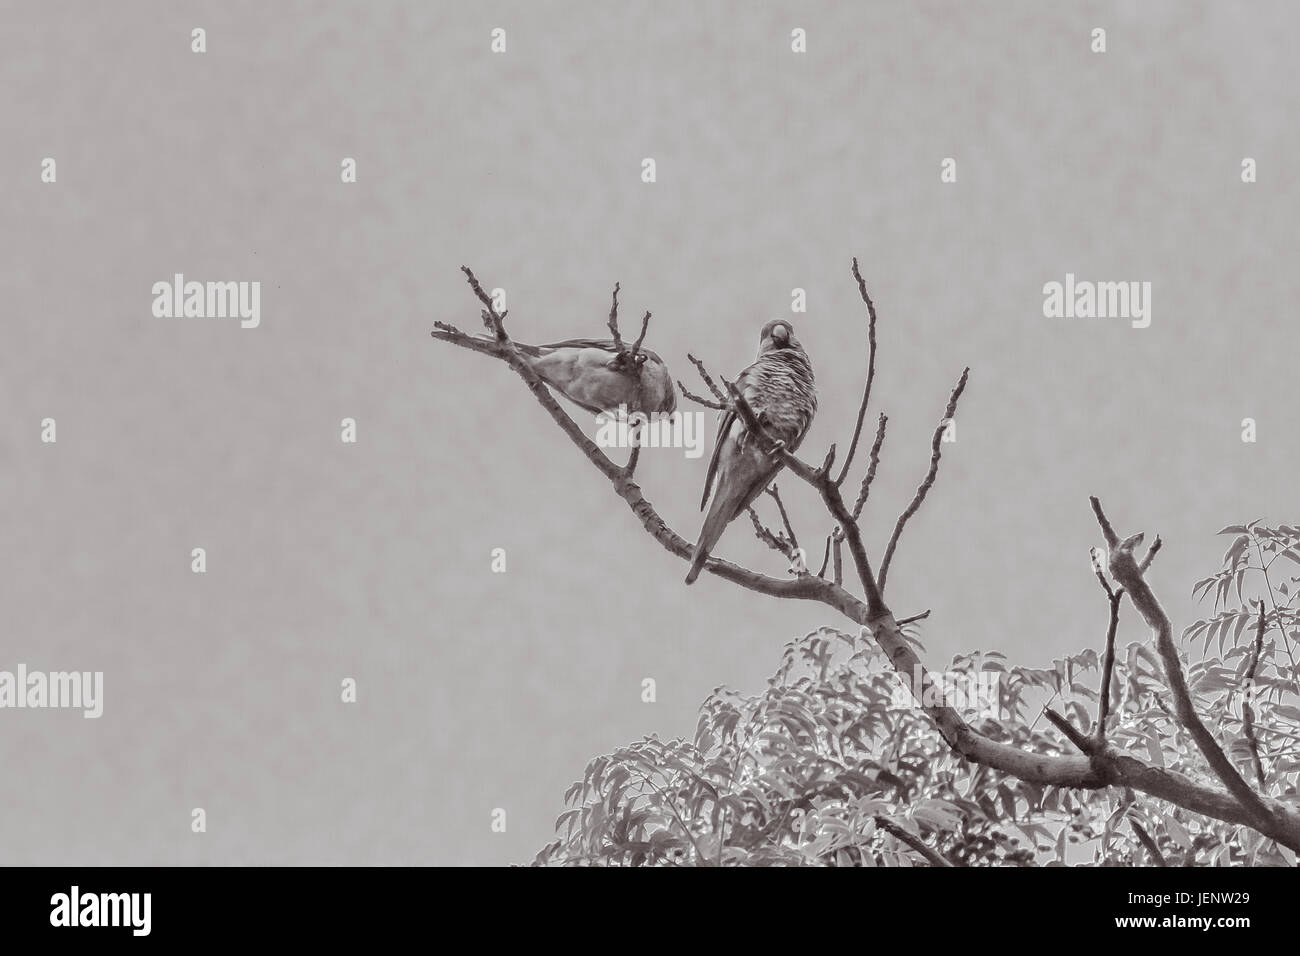 Couple of Parrots in the Top of a Tree - Stock Image